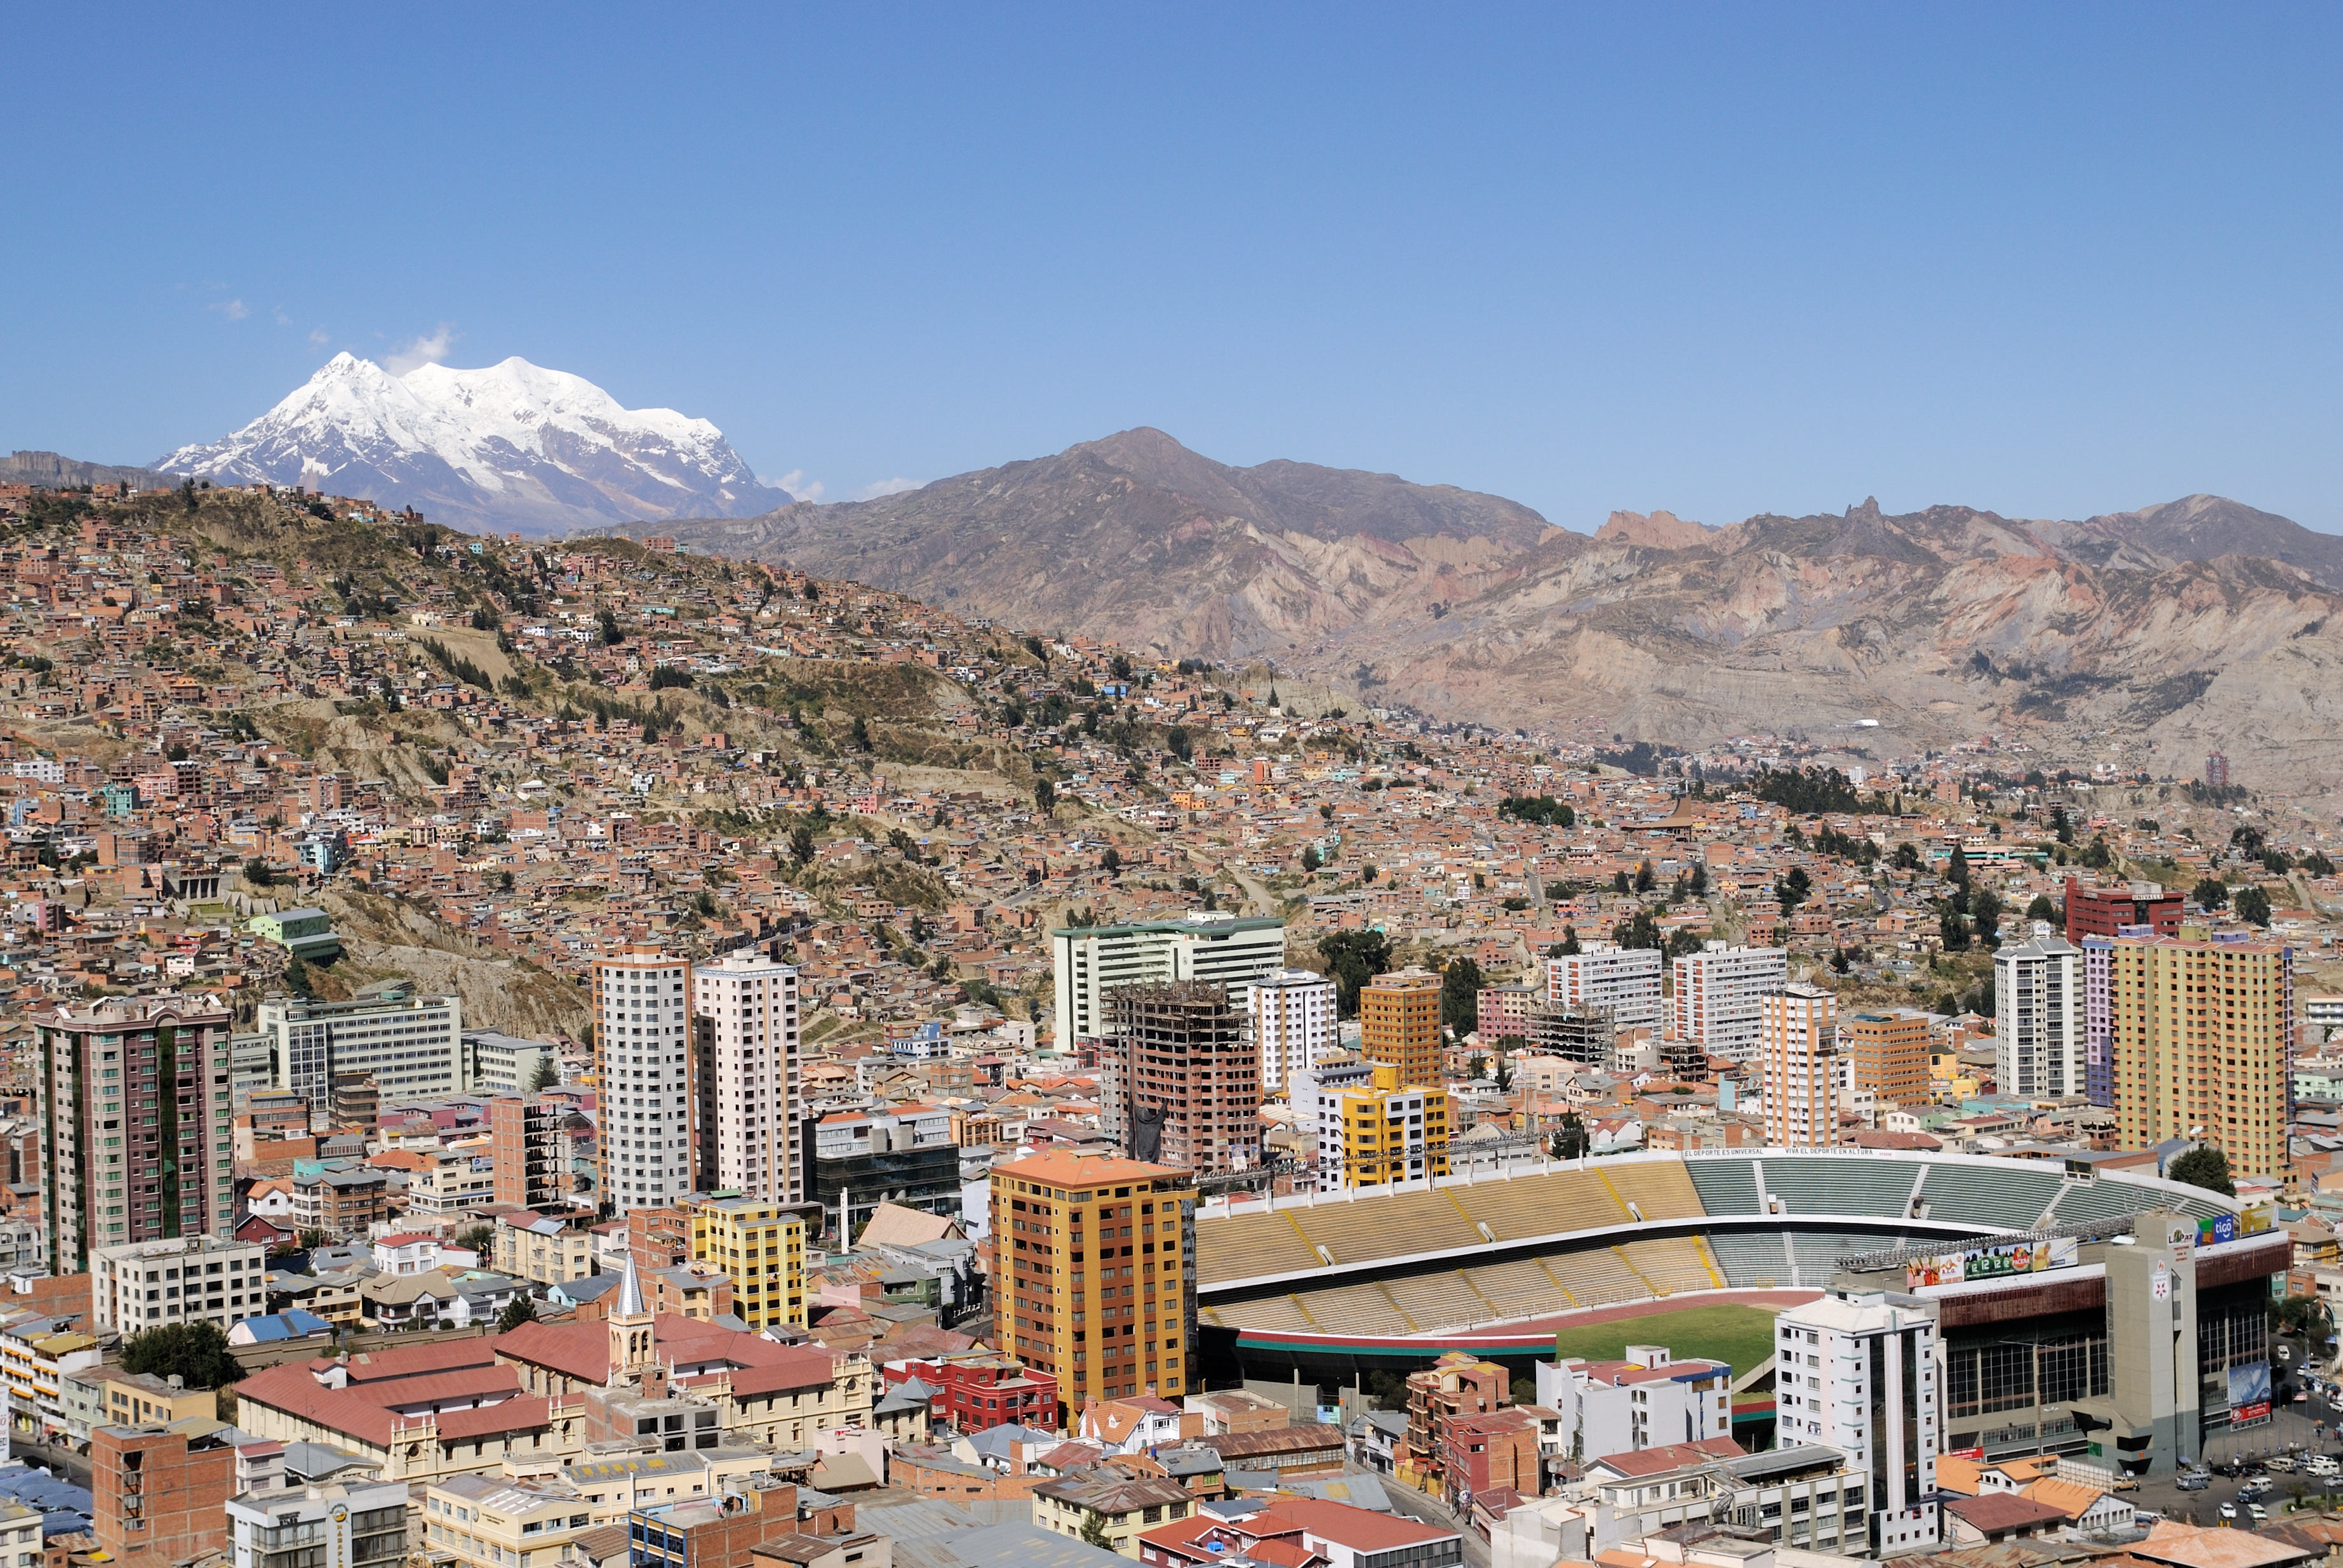 The City Football Group reaches Bolivia – how much further will the expedition run?